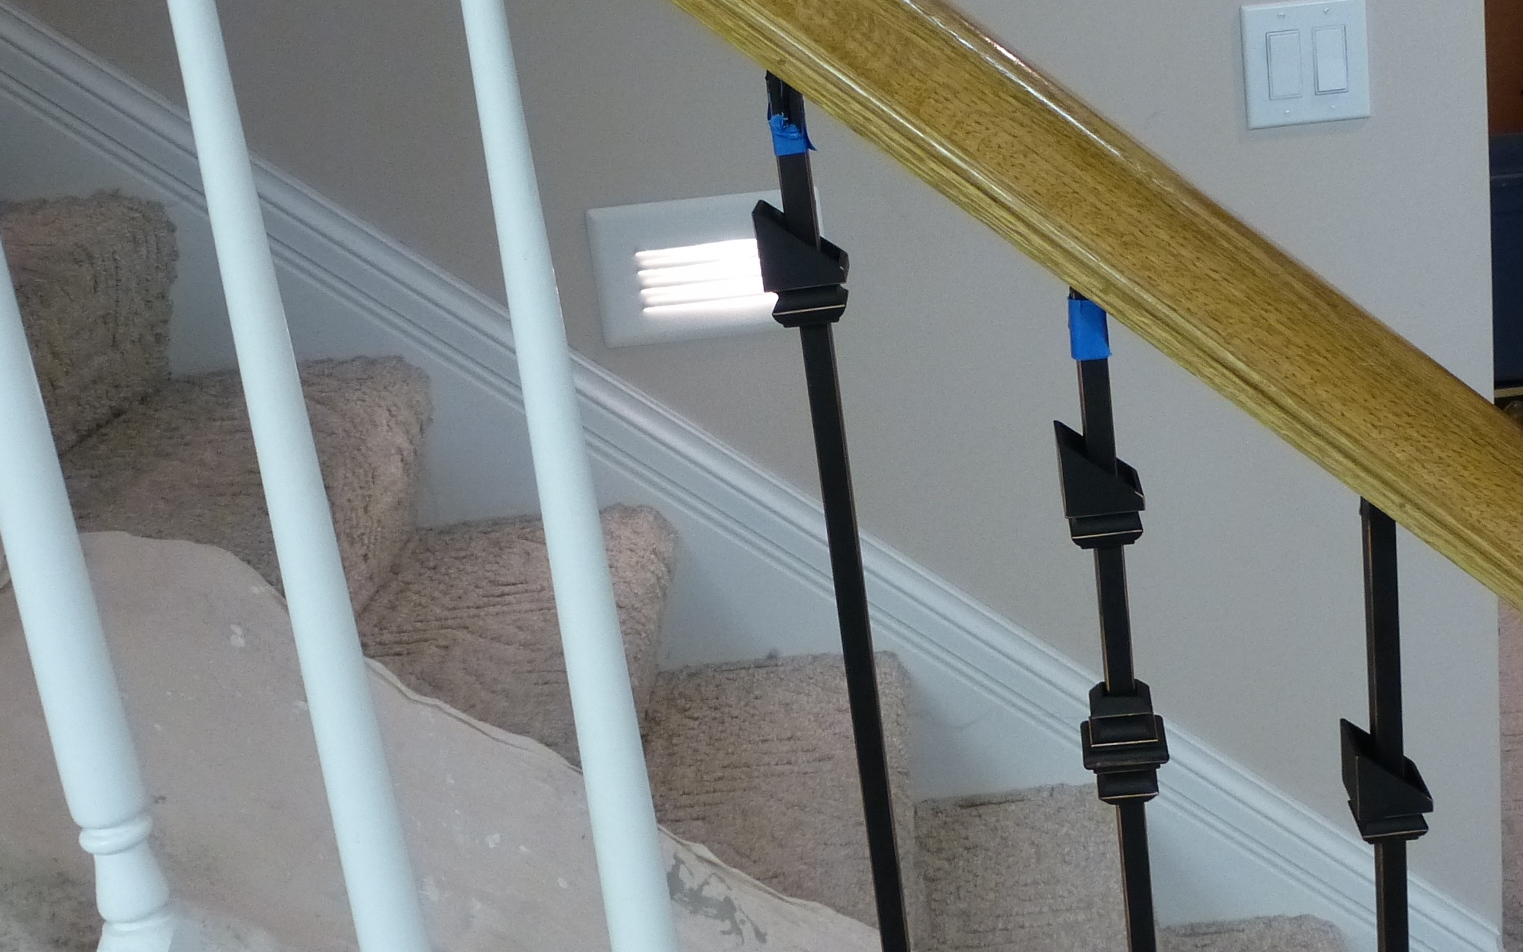 Merveilleux Replacing Wooden Stair Balusters (Spindles) With Wrought Iron P1010278  ...